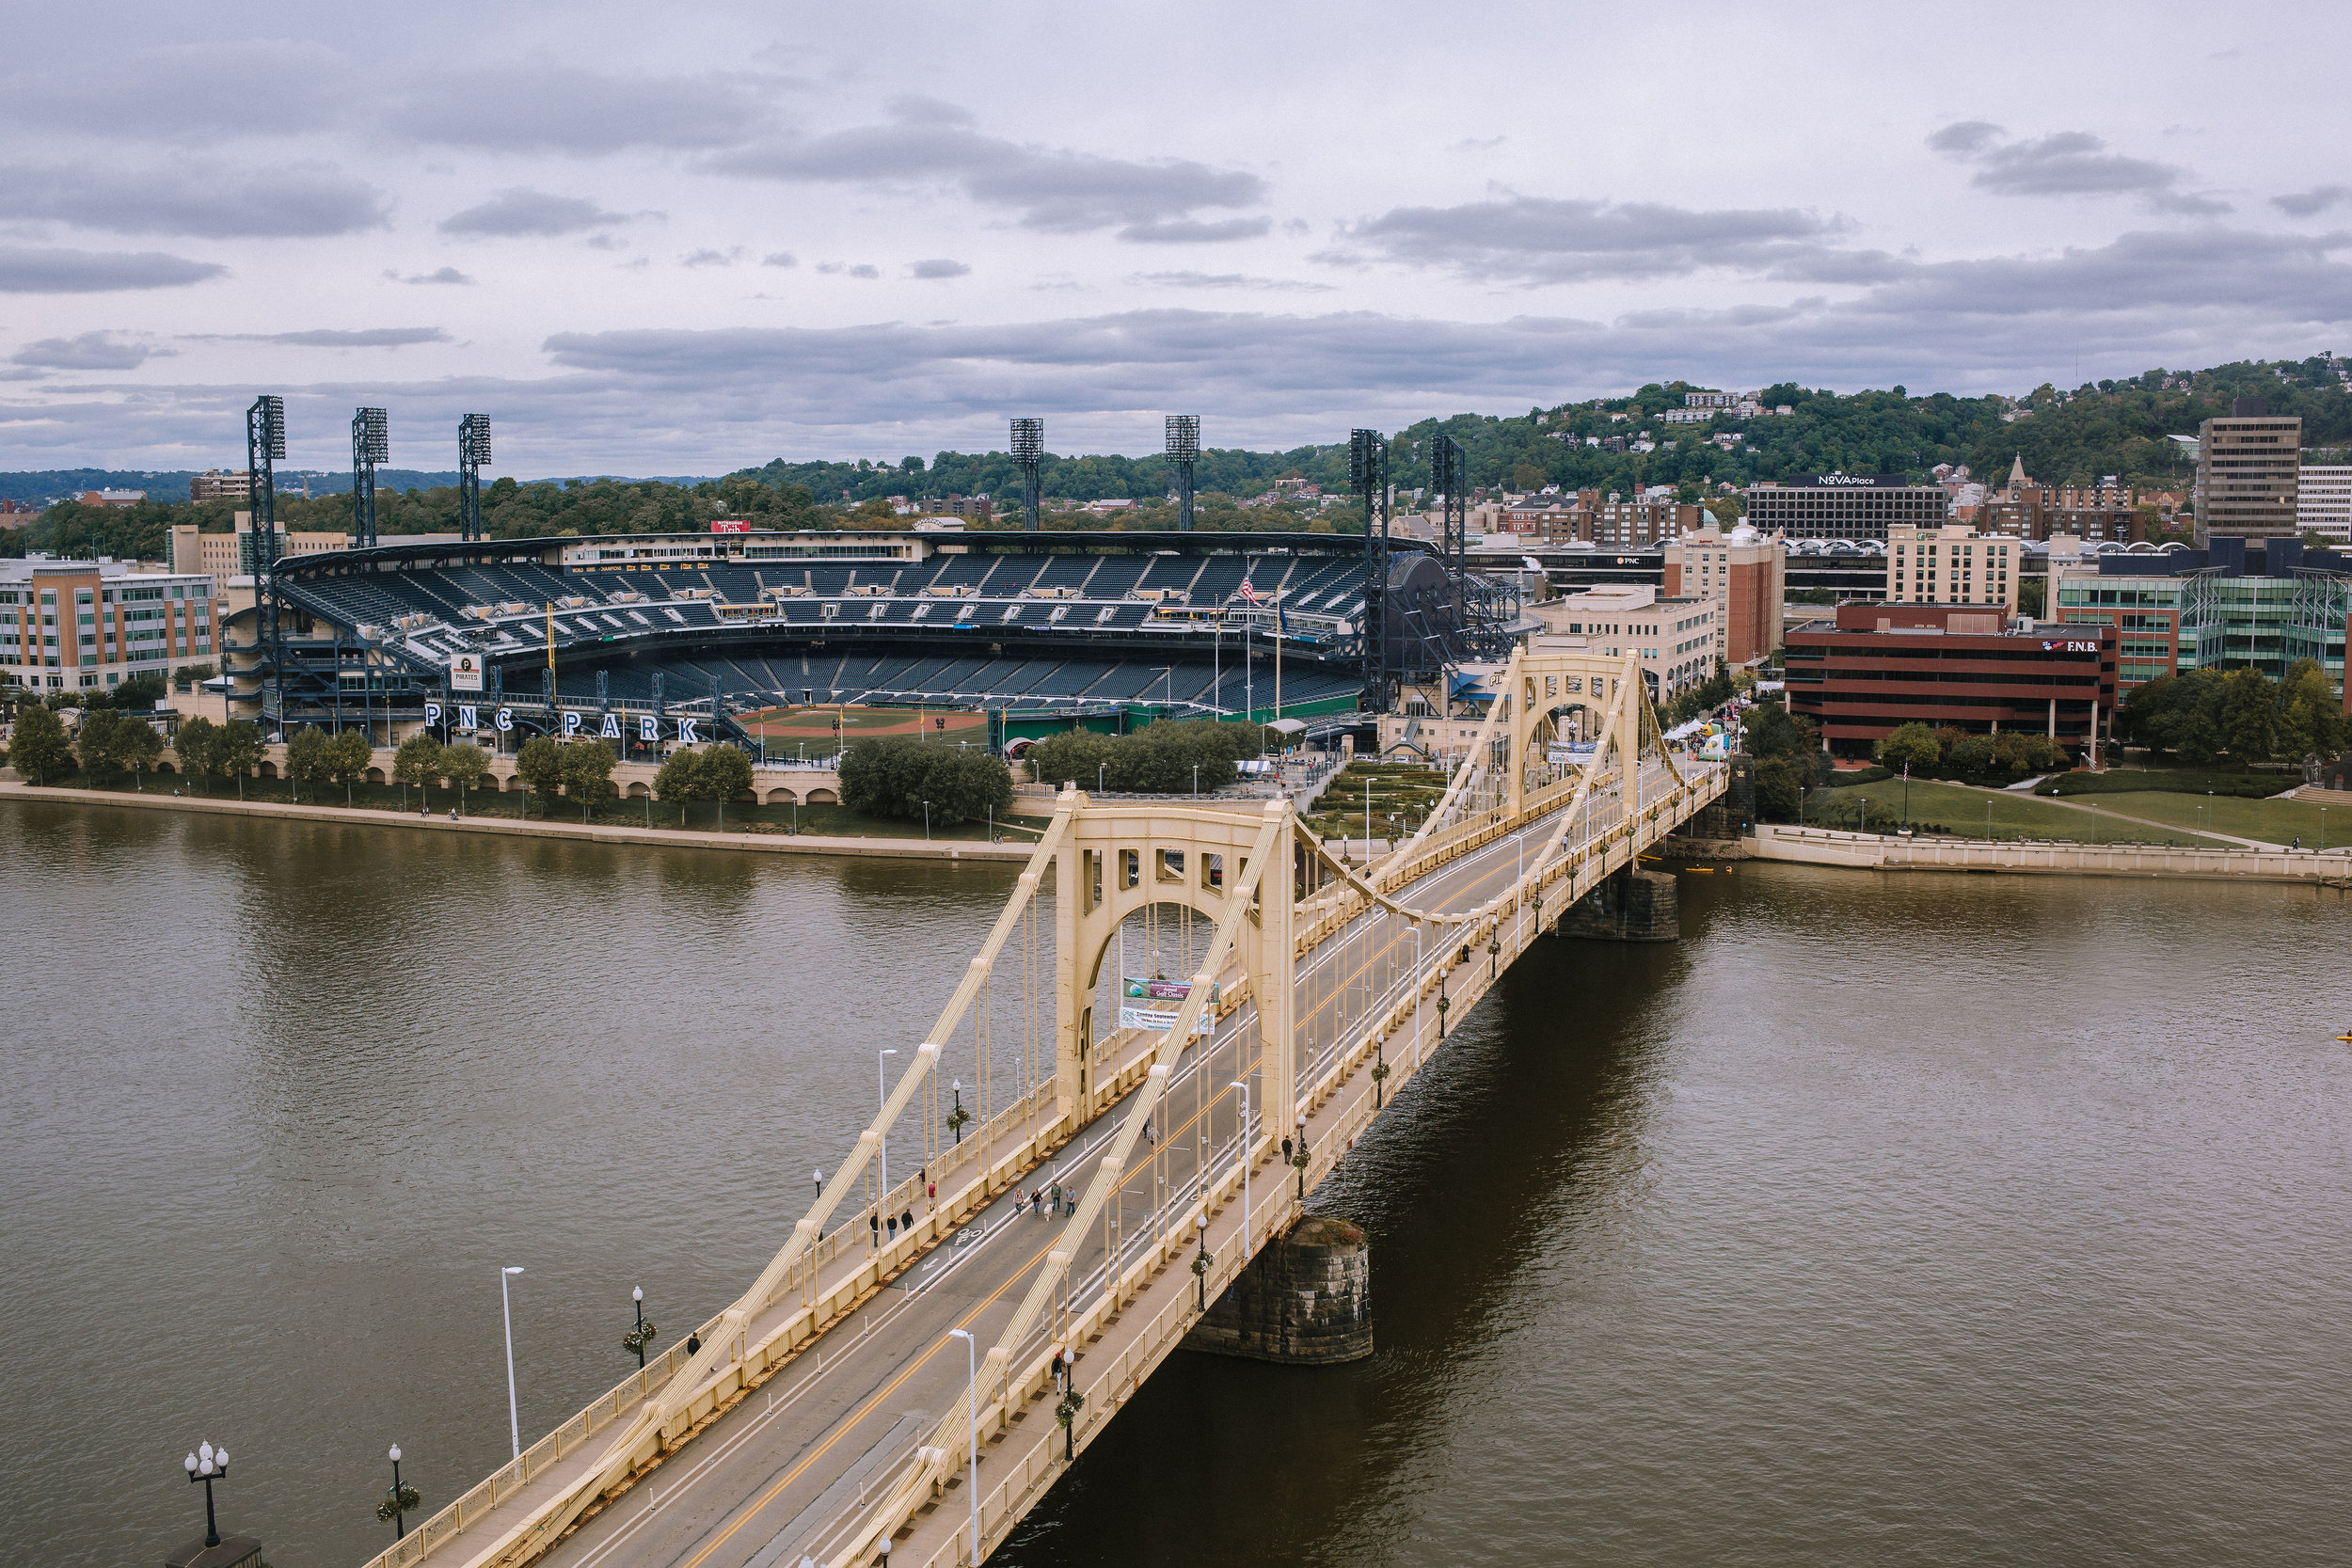 View of the city with bridge for Pittsburgh wedding at Studio Slate planned by Exhale Events. Find more wedding inspiration at exhale-events.com!